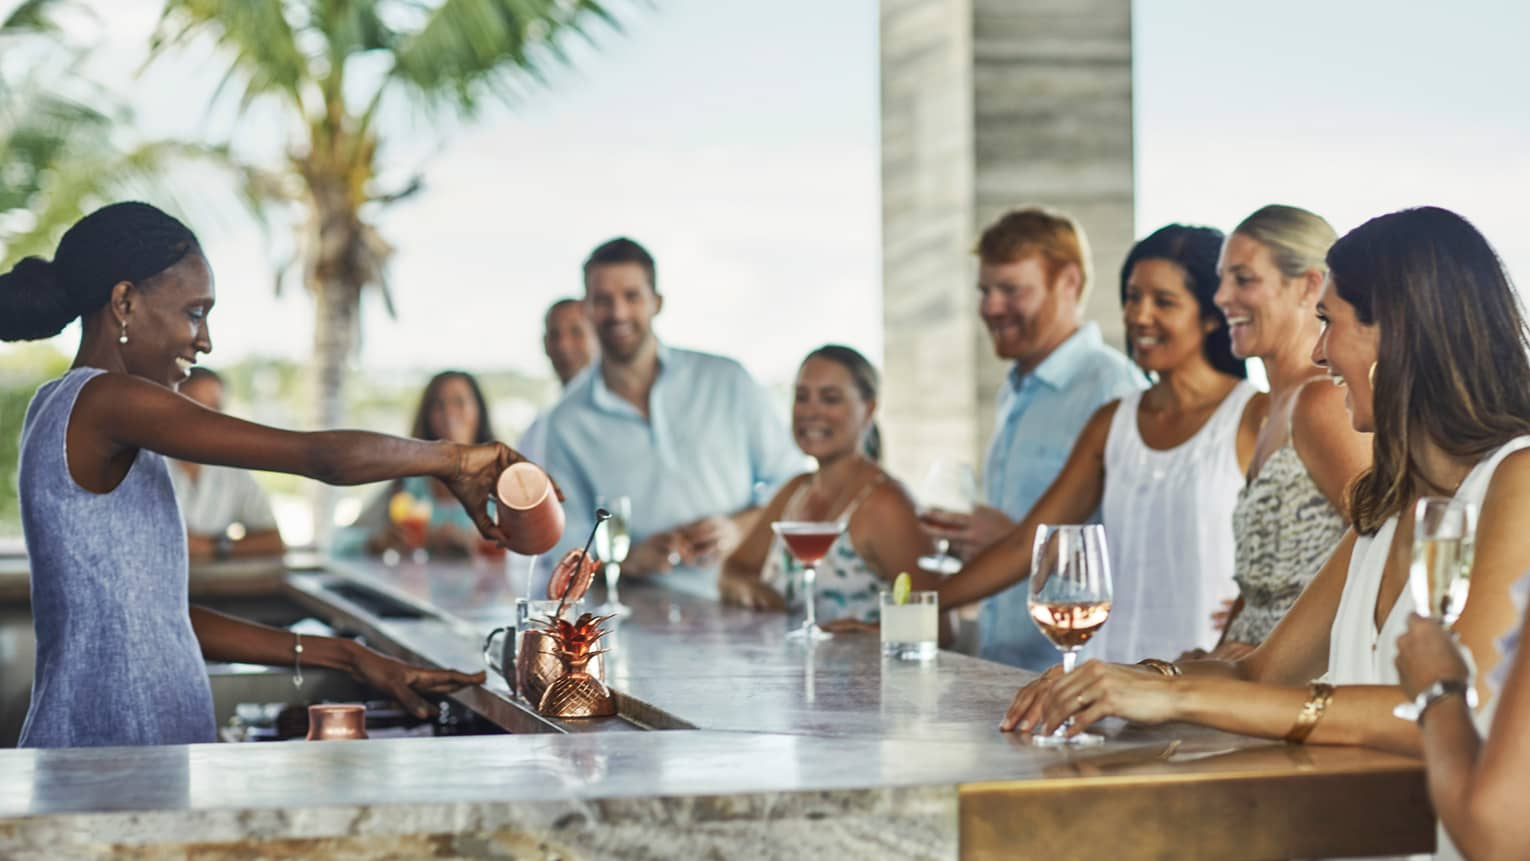 Smiling mixologist pours cocktail as guests sit around sunny bar